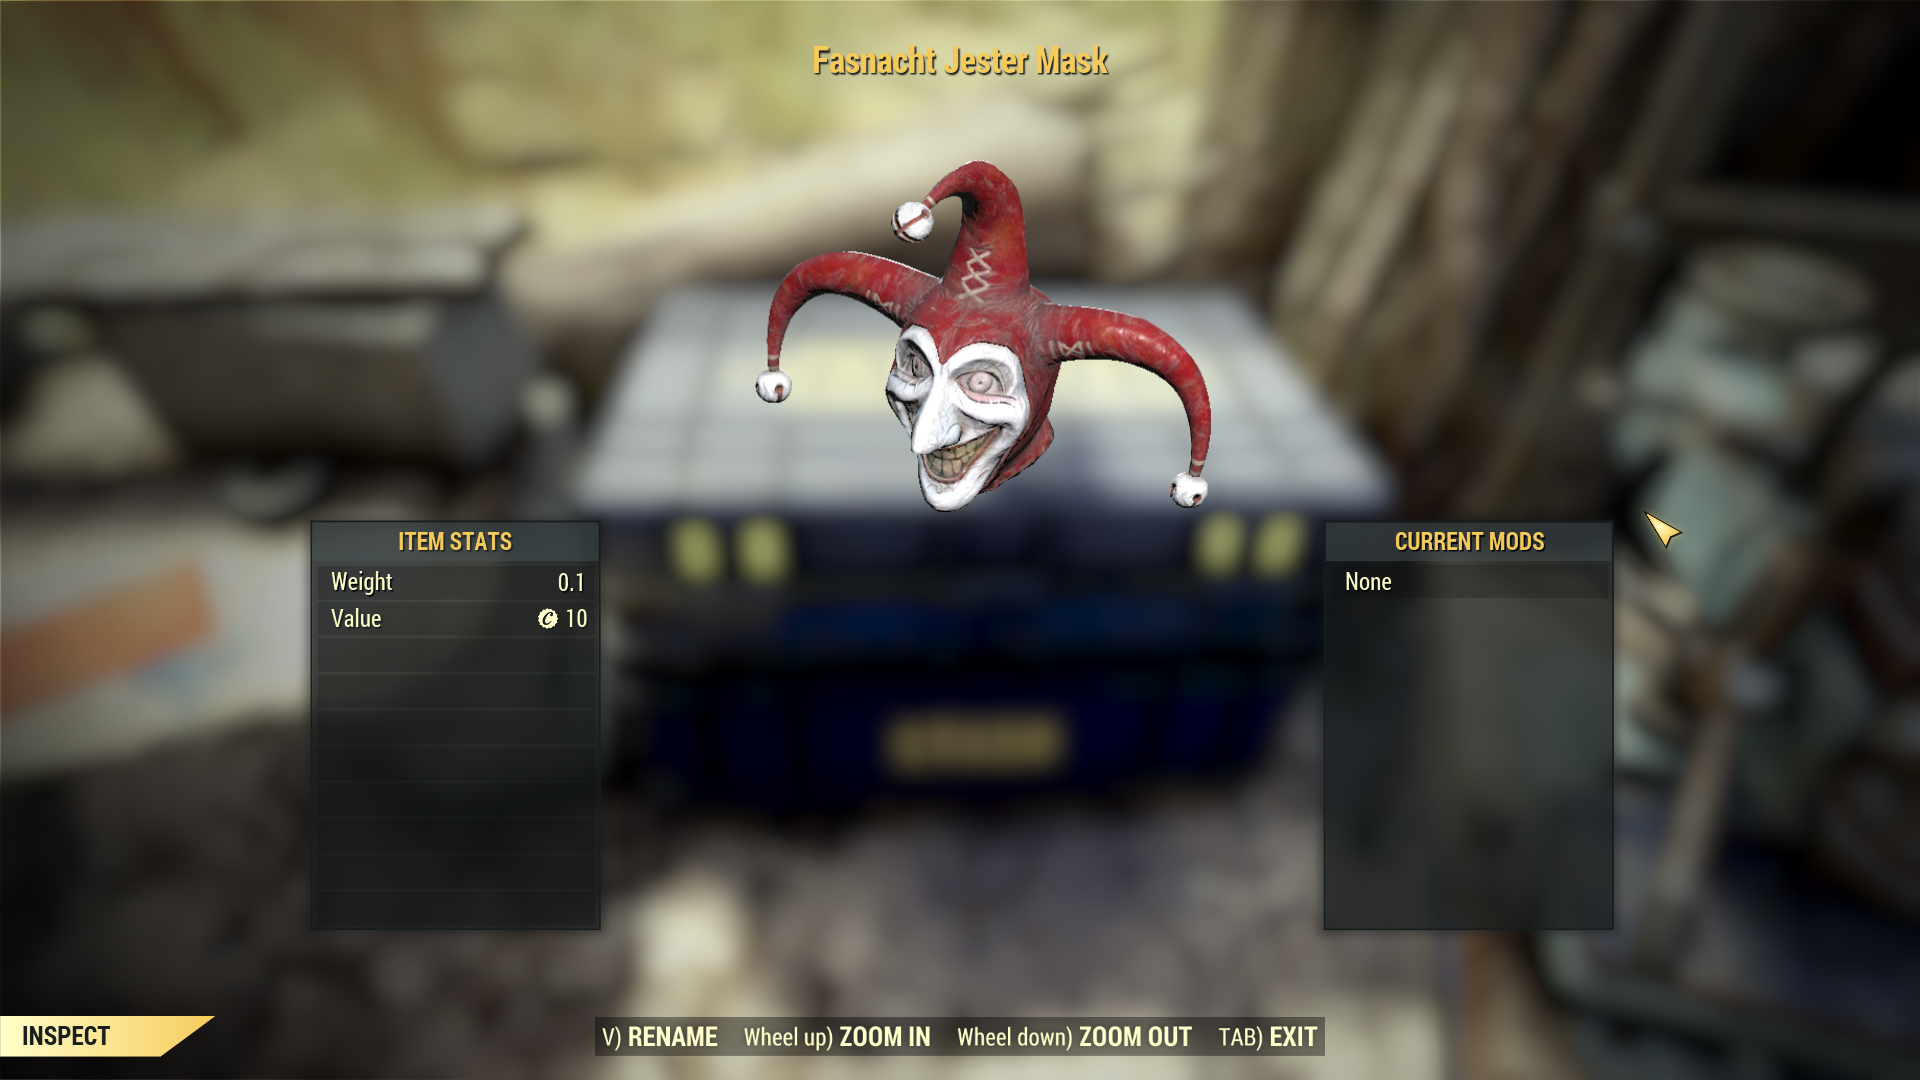 [Rare outfit] Fasnacht Jester Mask